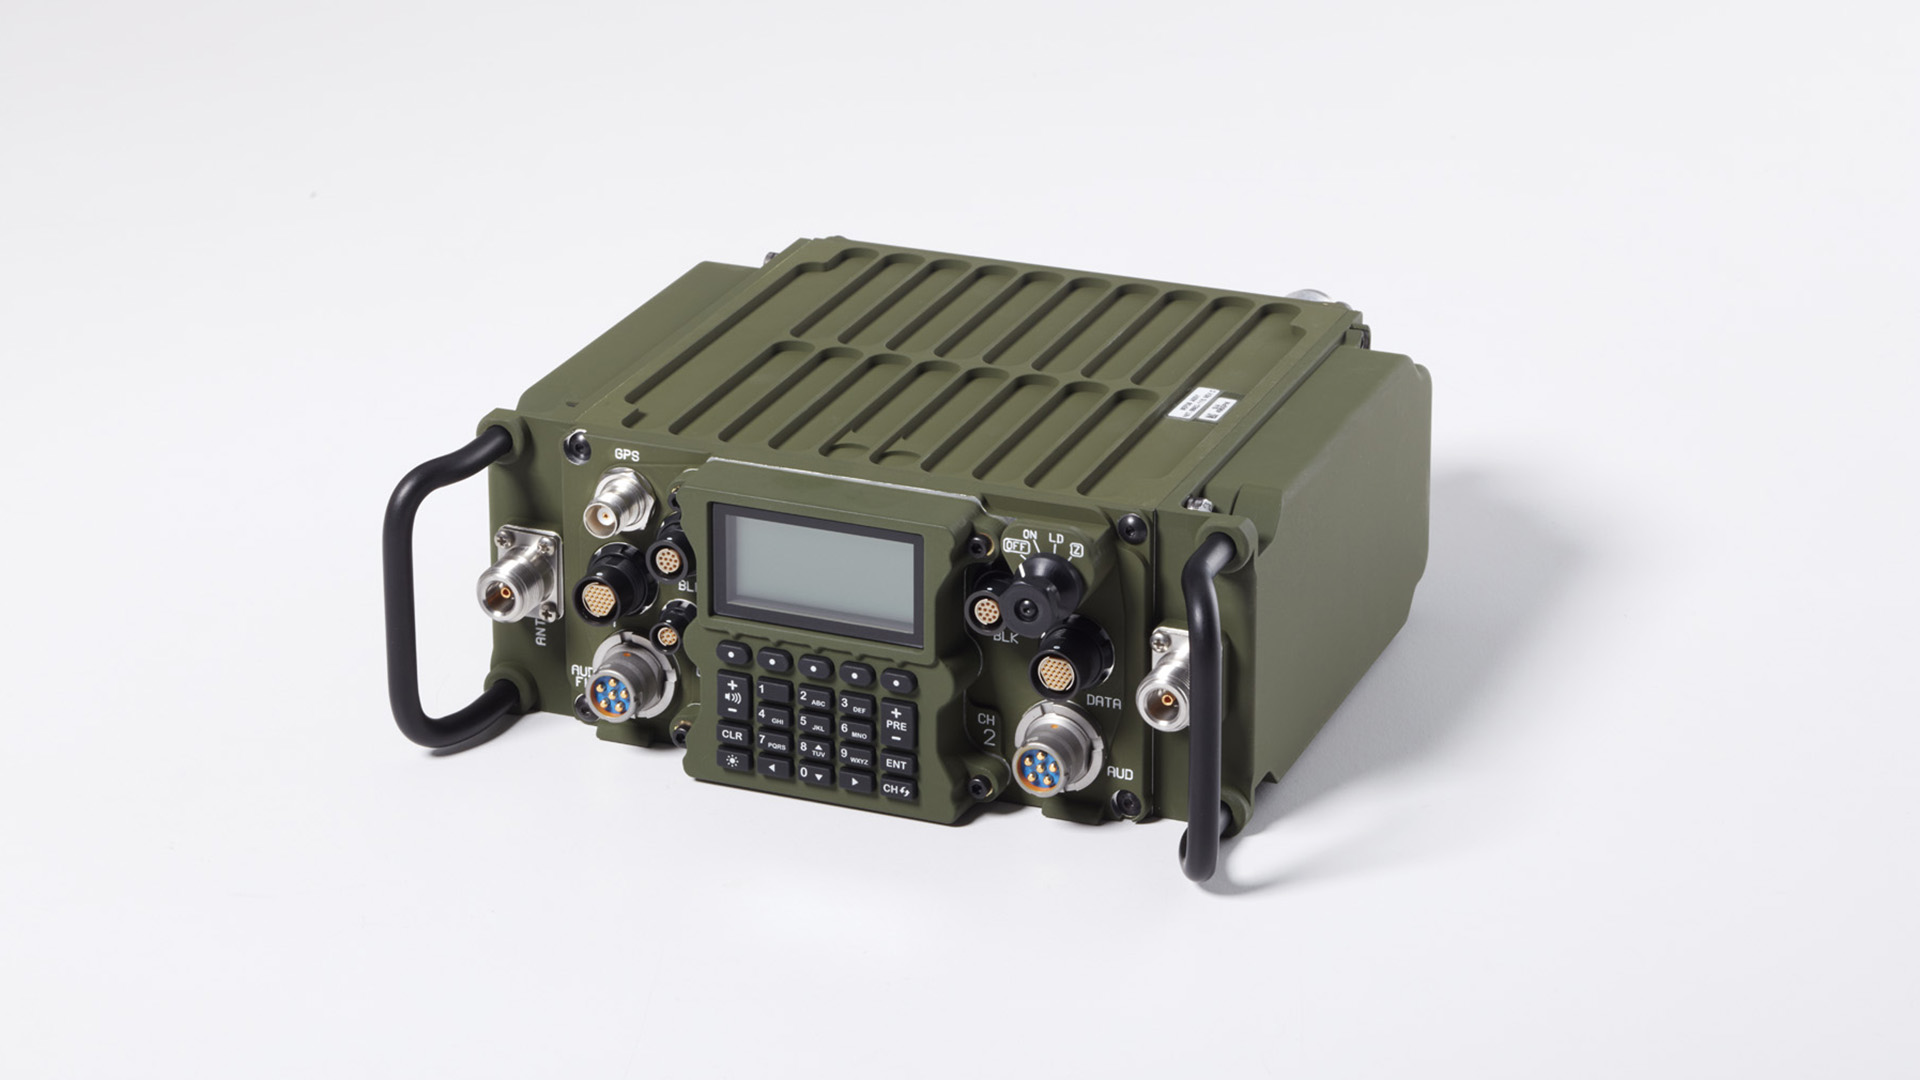 TruNet AN/PRC-162 (V)1 networked communications ground radio